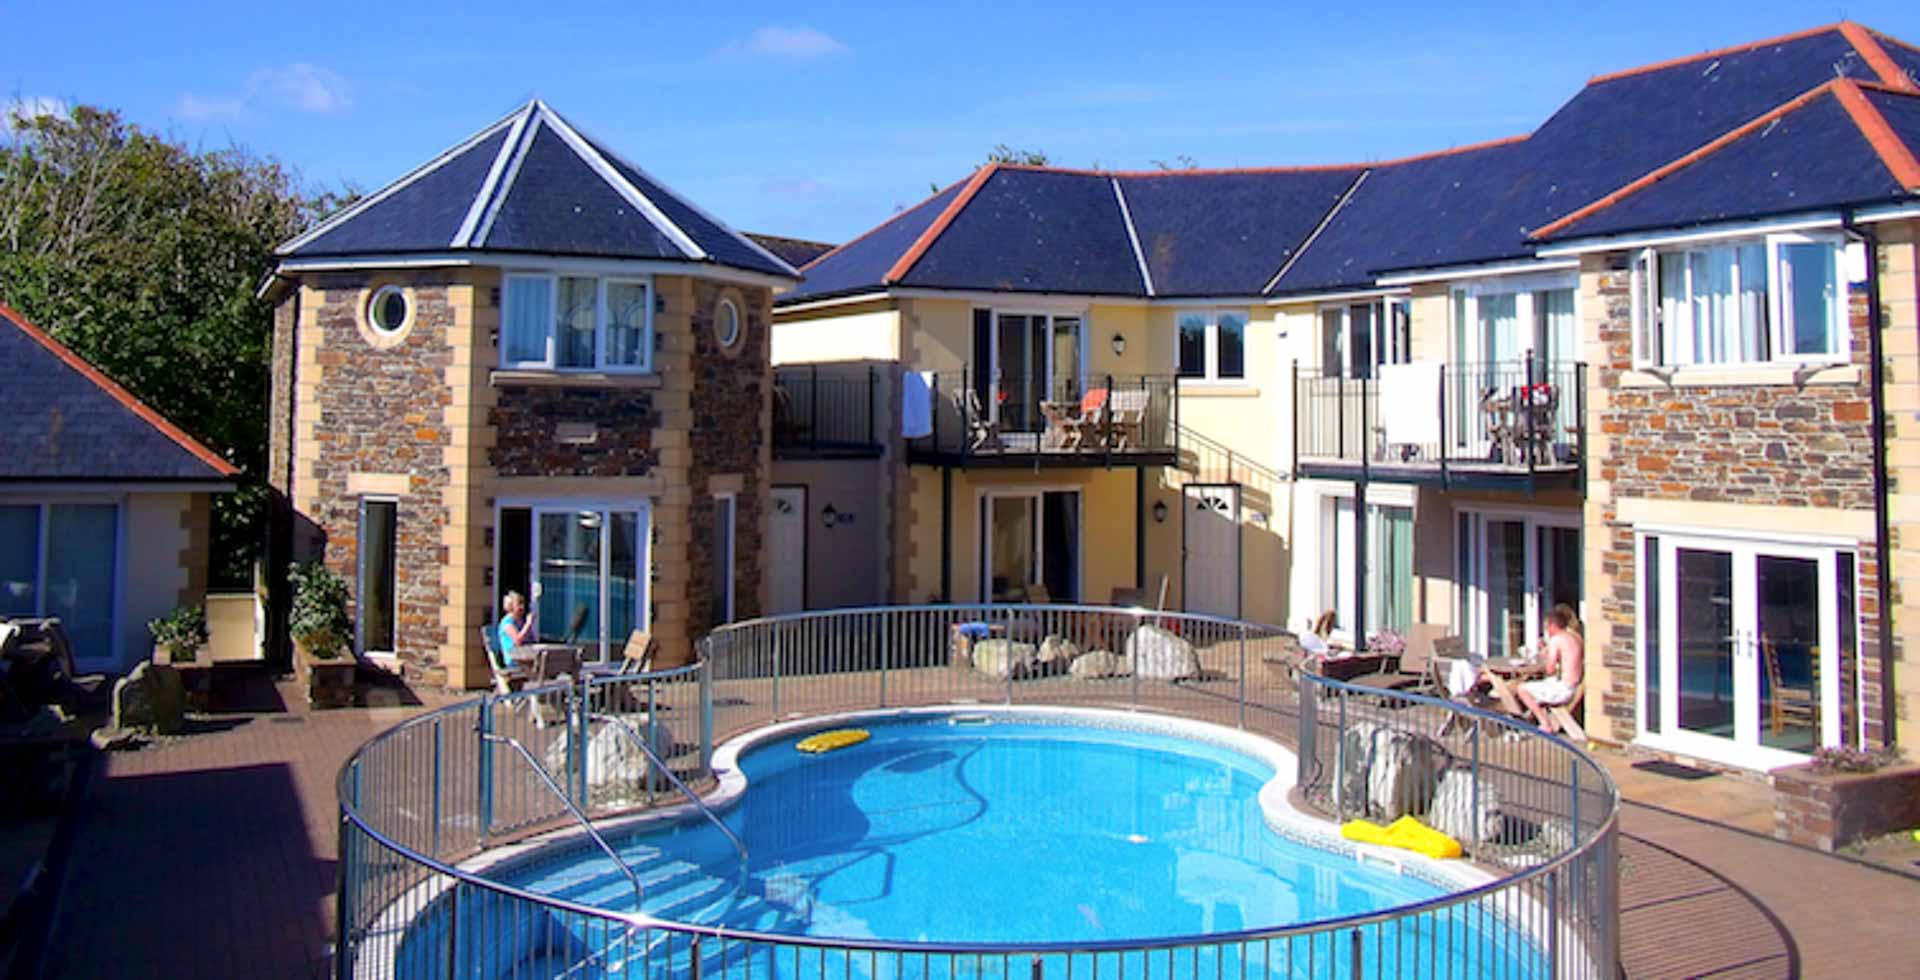 cornwall holiday cottages newquay the beach house apartment 11. Black Bedroom Furniture Sets. Home Design Ideas